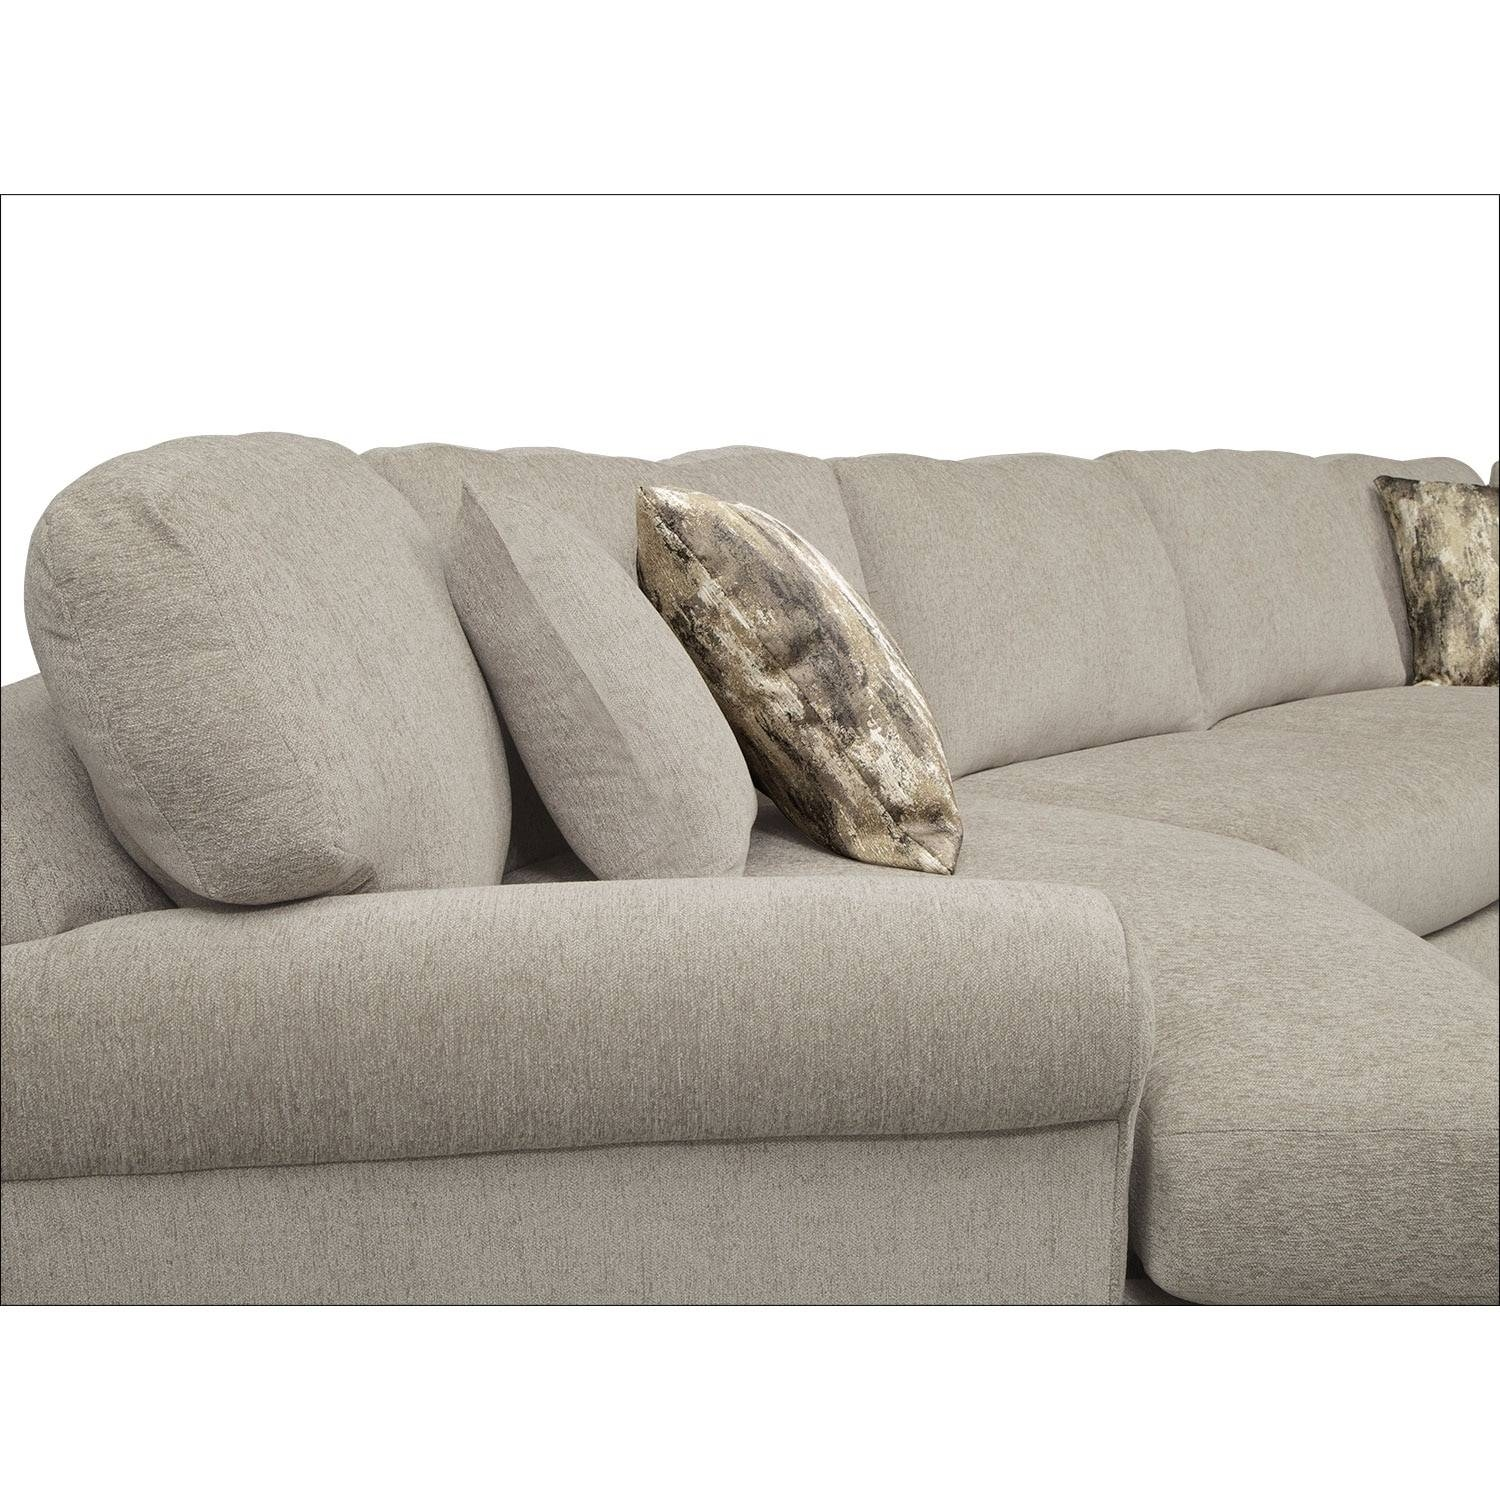 Karma 3-Piece Sectional With Left-Facing Cuddler - Mink | Value for Sectional Sofa With Cuddler Chaise (Image 9 of 25)